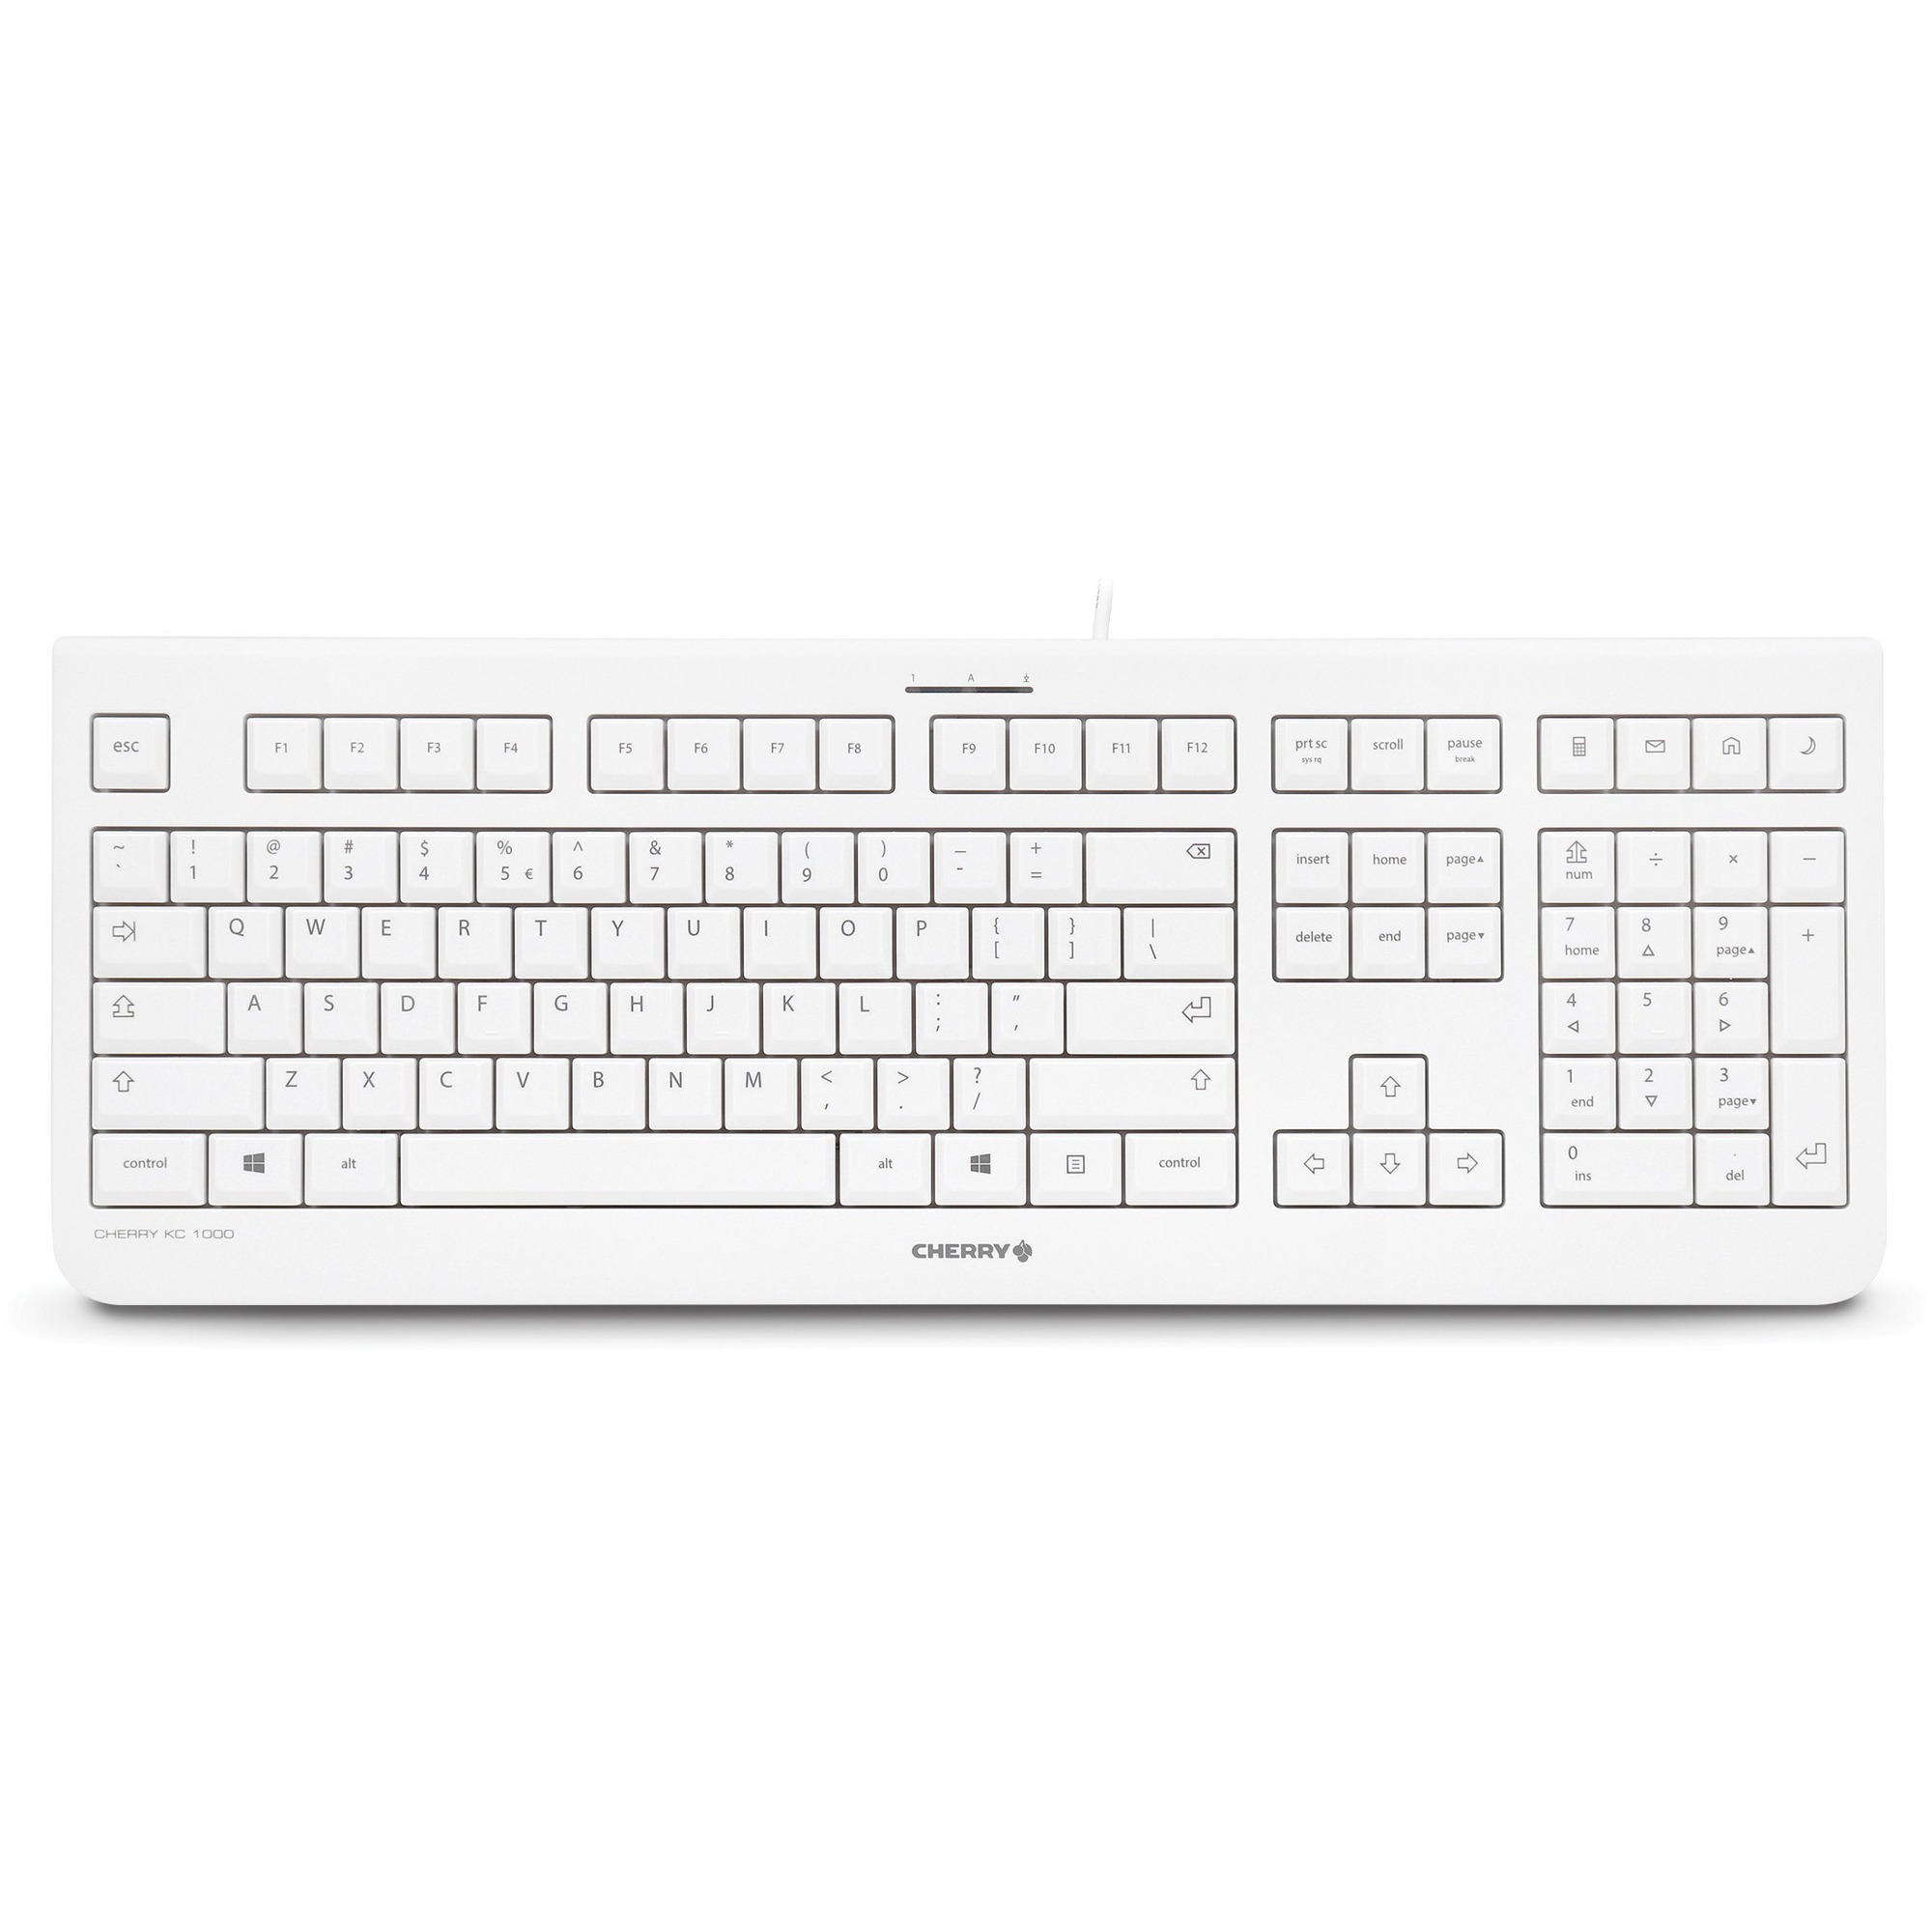 Cherry Kc 1000 Keyboard - Cable - Light Gray - Usb - English [us] - Calculator, Email, Browser, Sleep Hot Key[s] (jk-0800eu-0)